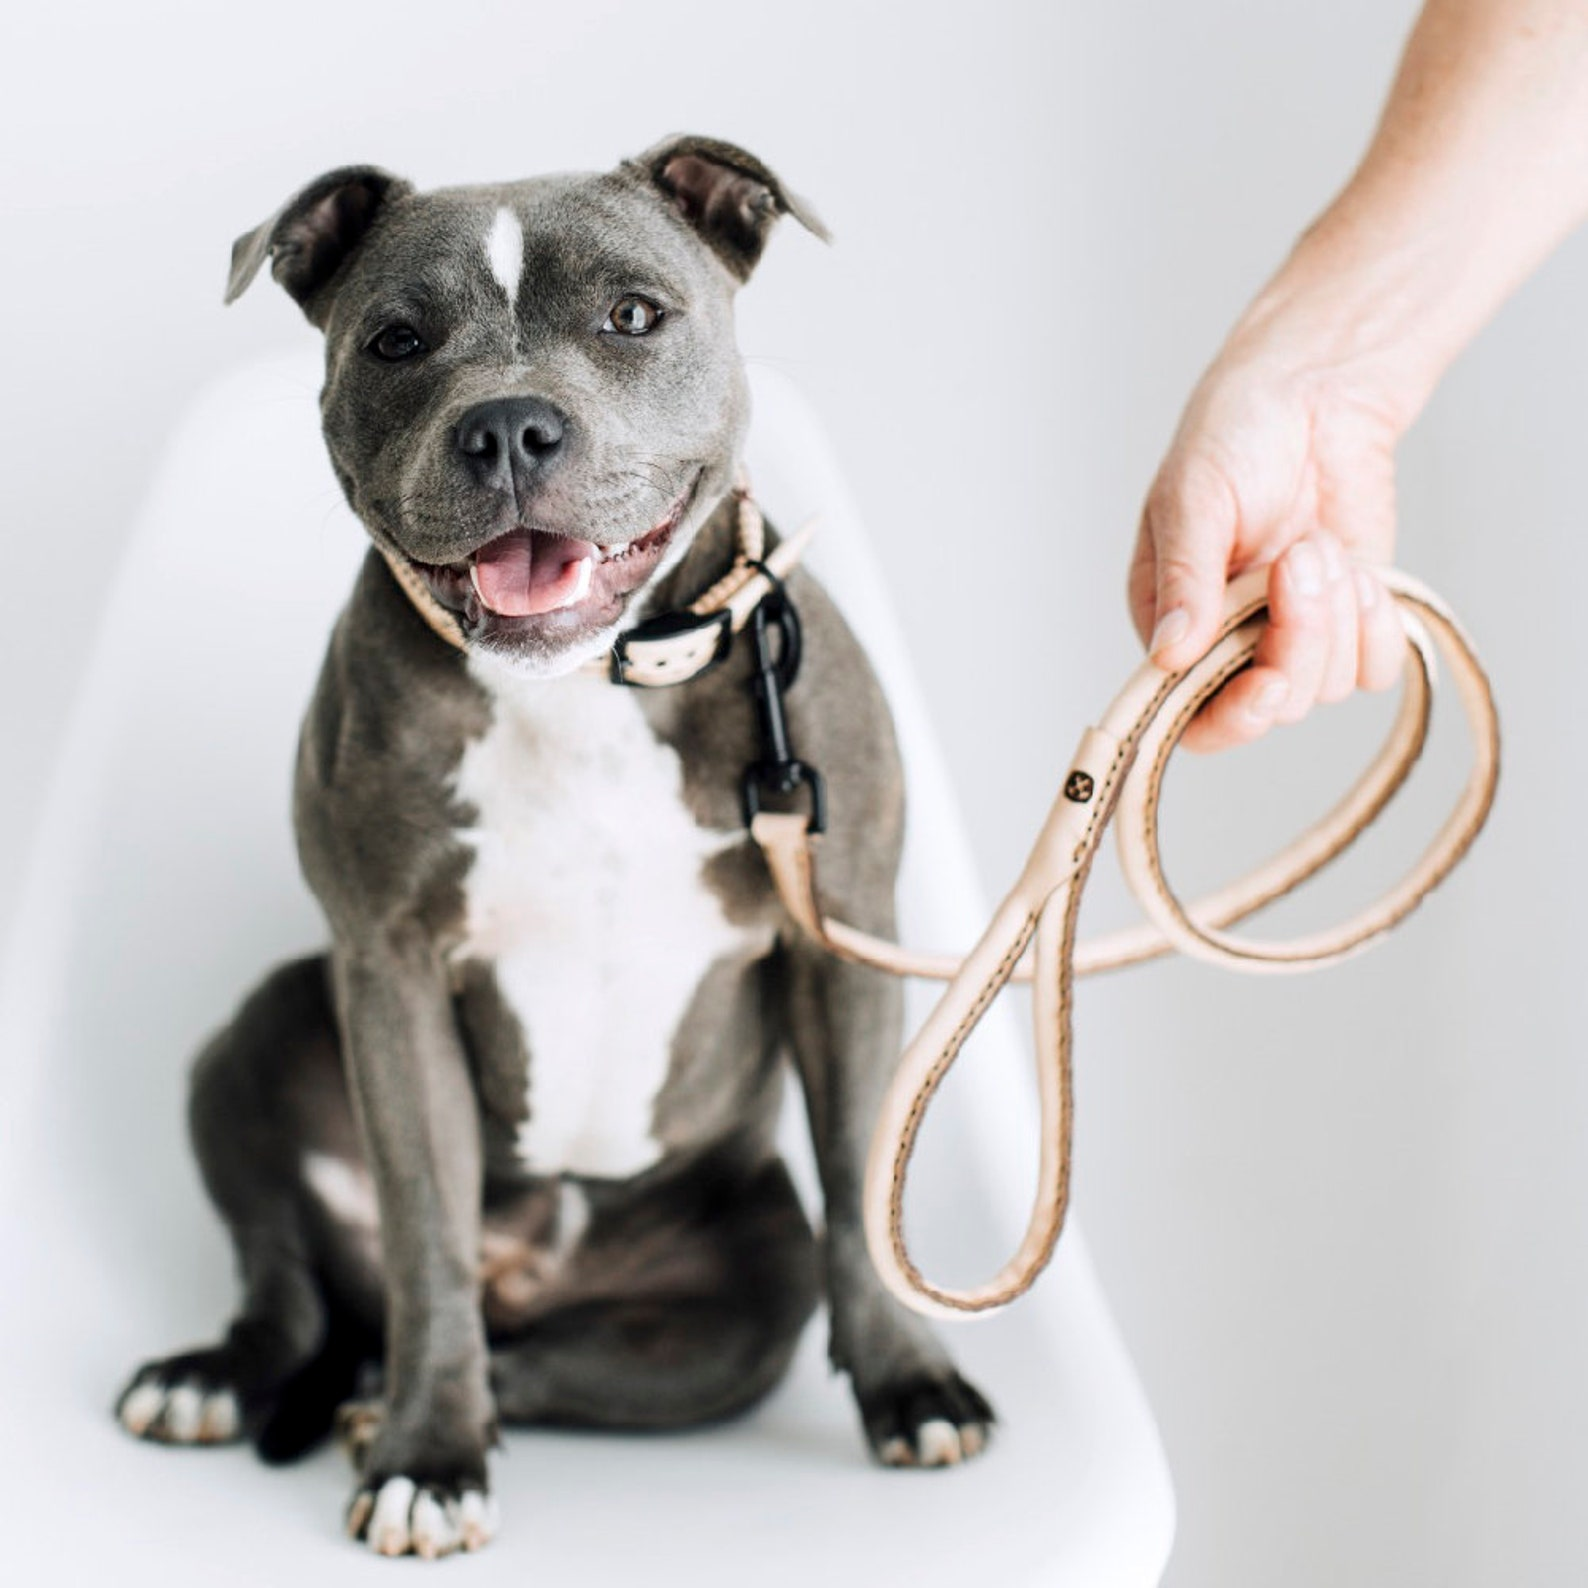 Dog posing with leather leash